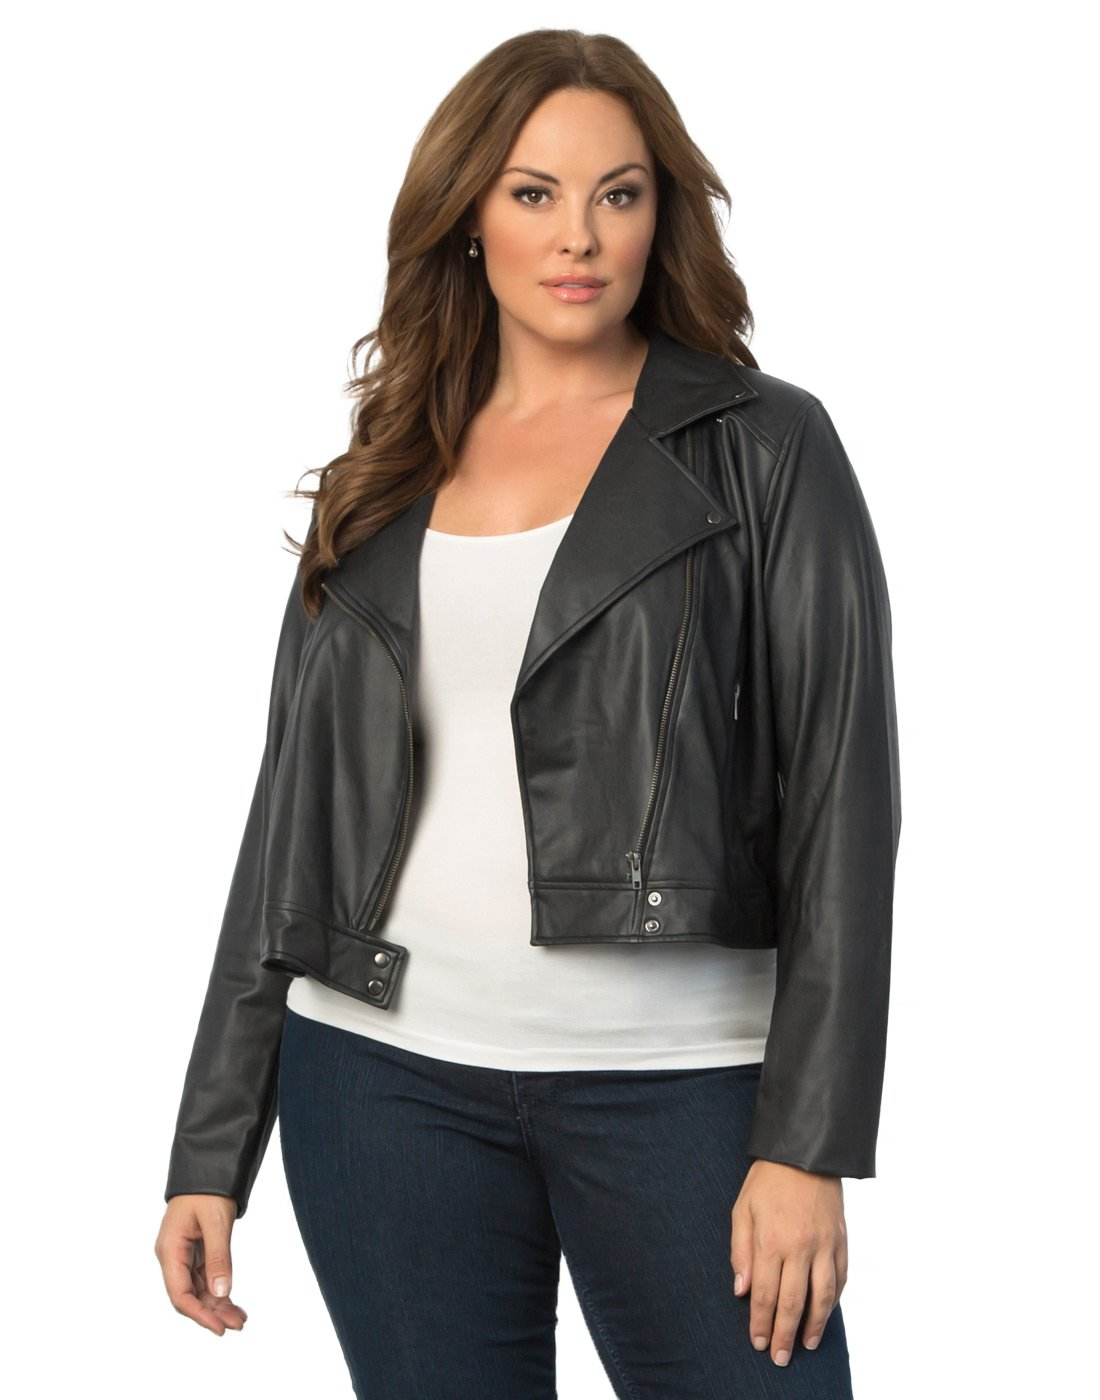 Kiyonna Clothing Women's Plus Size Belfast Jacket by Lyssé 2X Black by Kiyonna Clothing